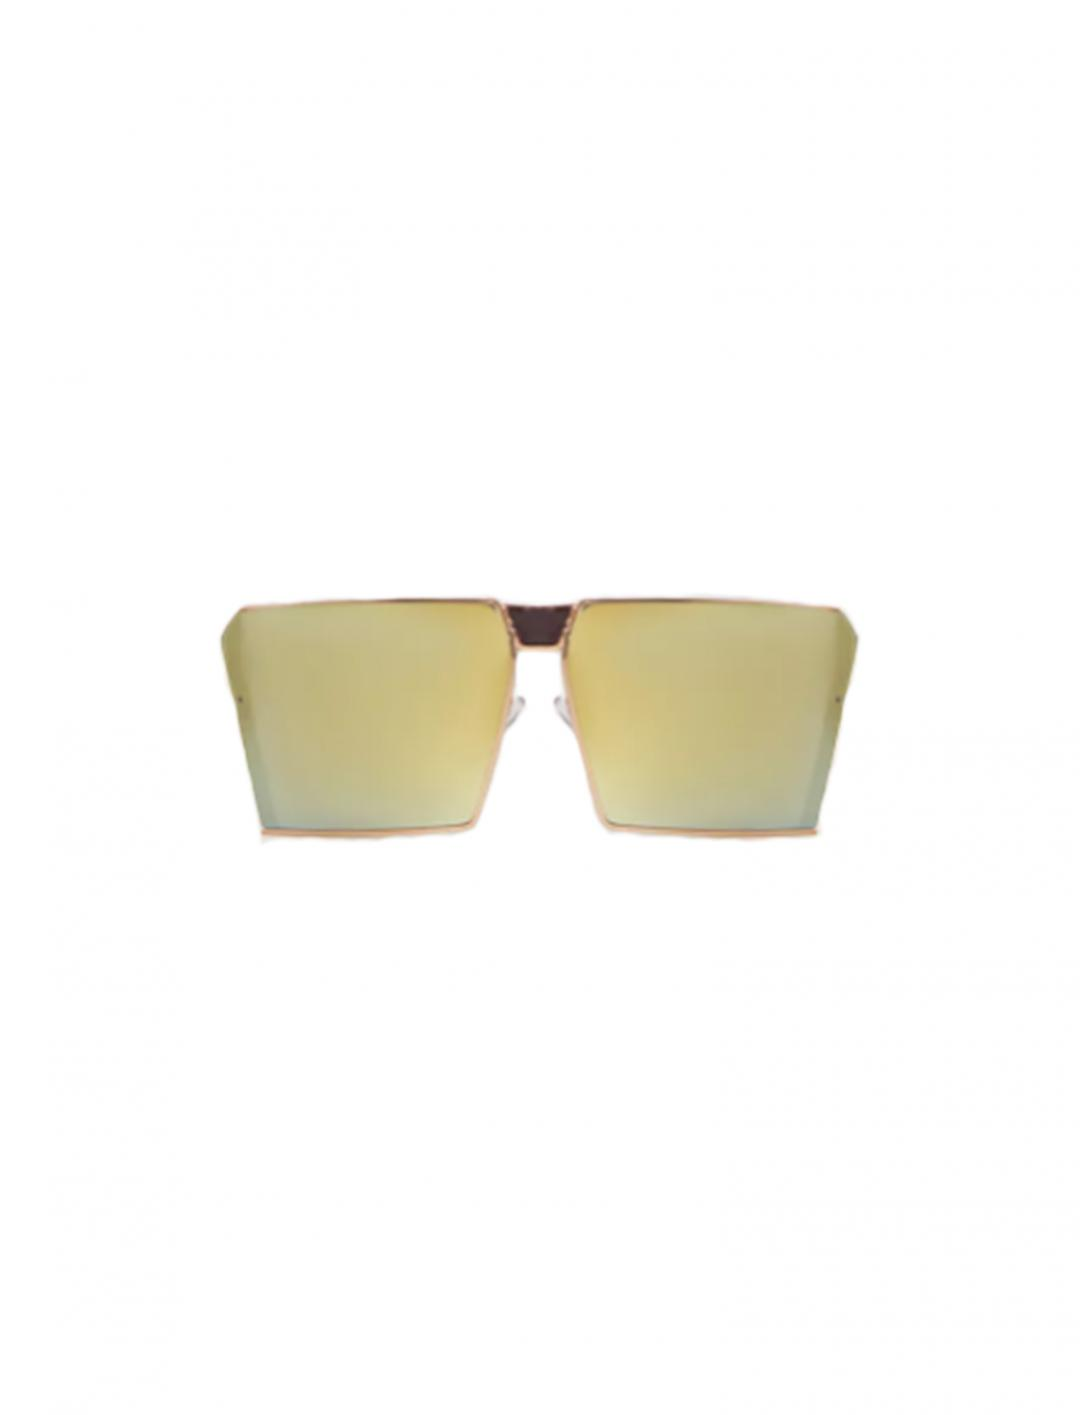 Square Frame Sunglasses Accessories Prettylittlething